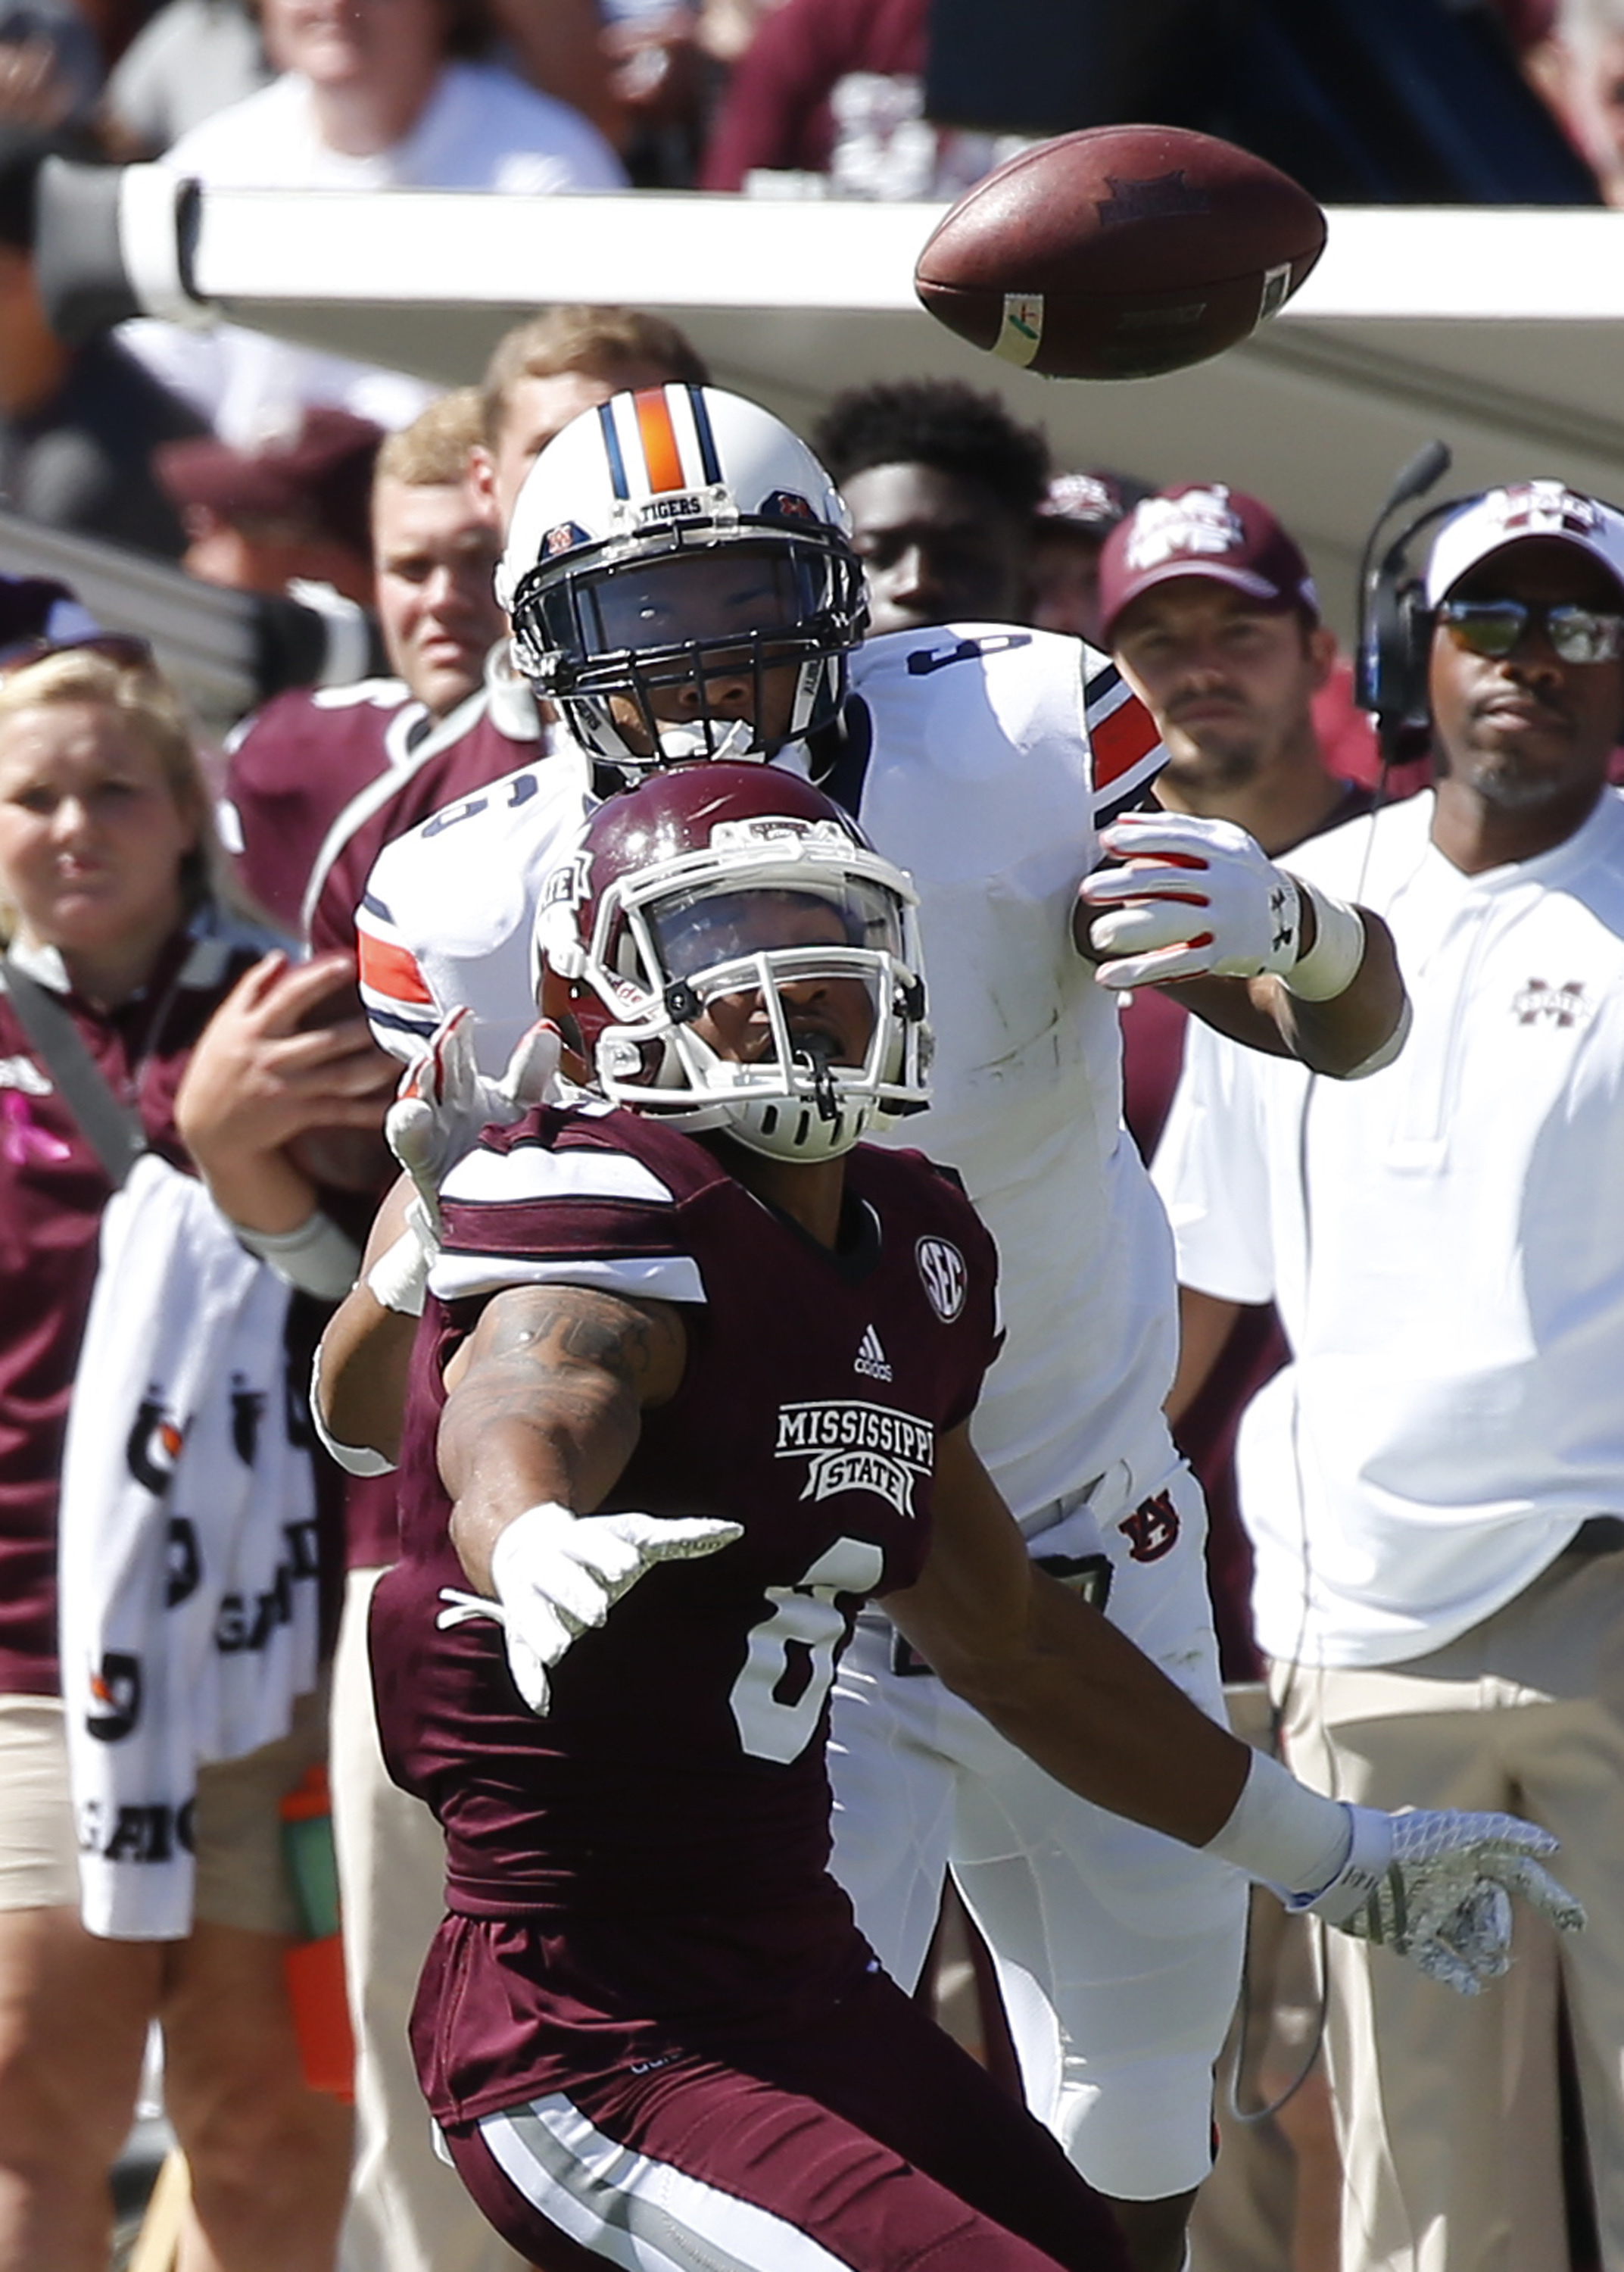 Mississippi State wide receiver Fred Ross (8) has a pass knocked away by Auburn defensive back Carlton Davis (6) in the first half of an NCAA college football game, Saturday, Oct. 8, 2016, in Starkville, Miss.  (AP Photo/Rogelio V. Solis)